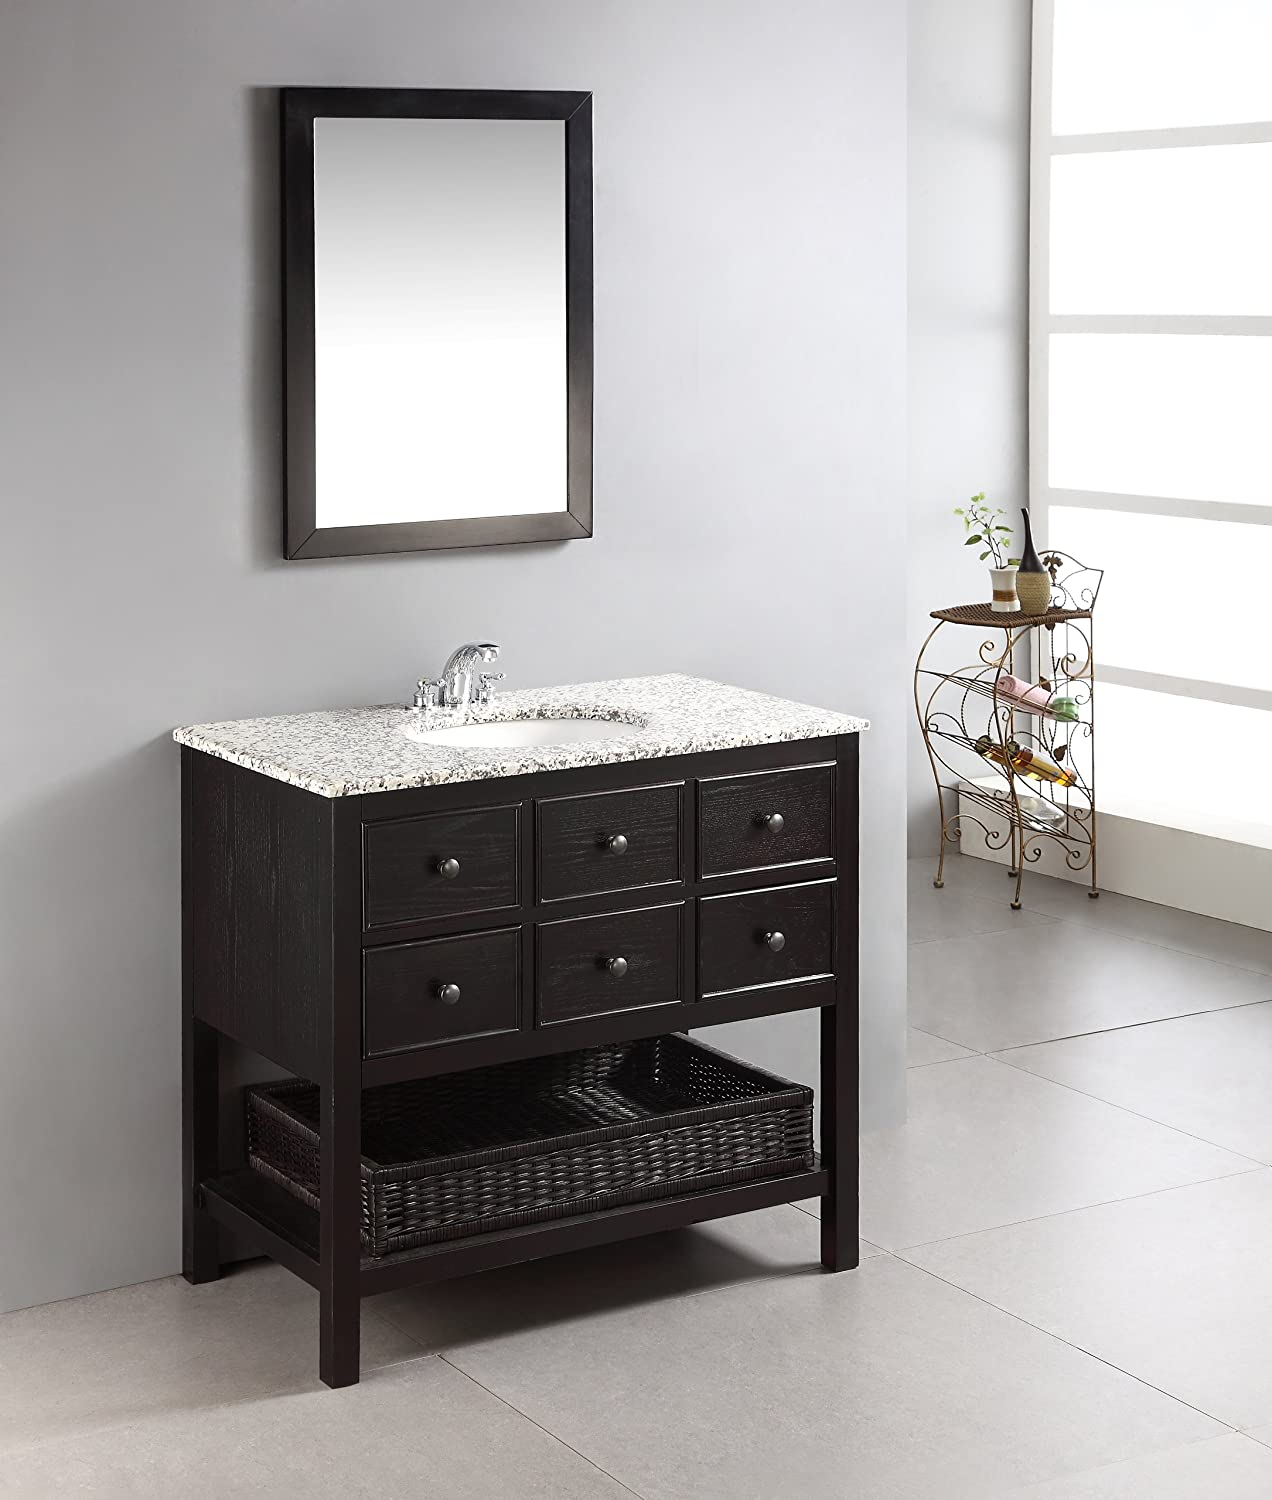 Simpli Home Burnaby Bath Vanity With Dappled Grey Granite Top - Bathroom vanities 36 inches wide for bathroom decor ideas